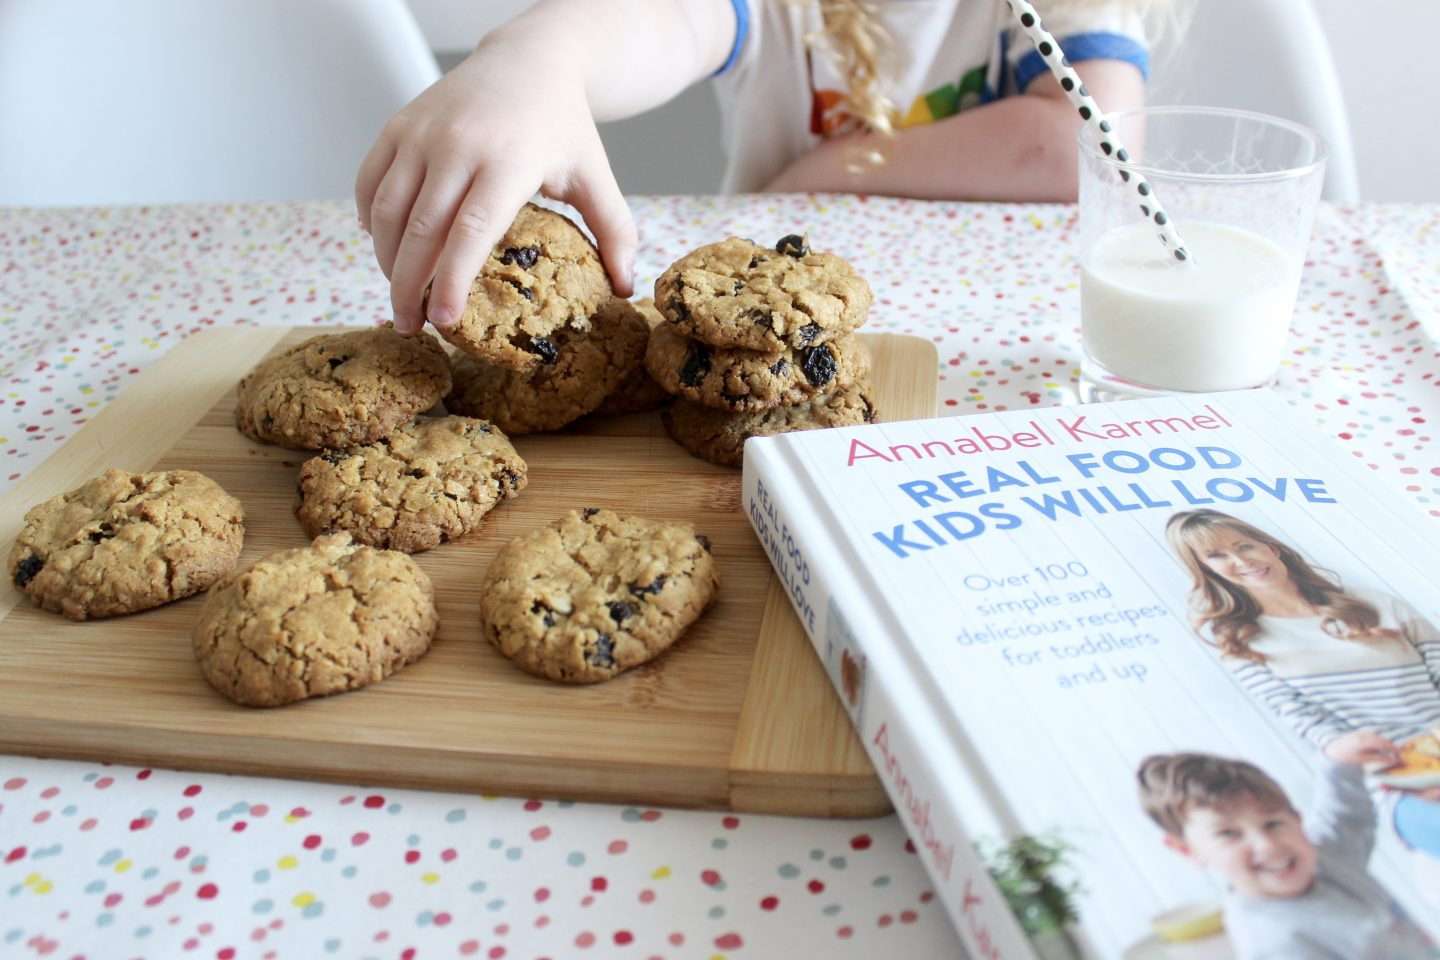 ANNABEL KARMEL | REAL FOOD KIDS WILL LOVE | GIVEAWAY